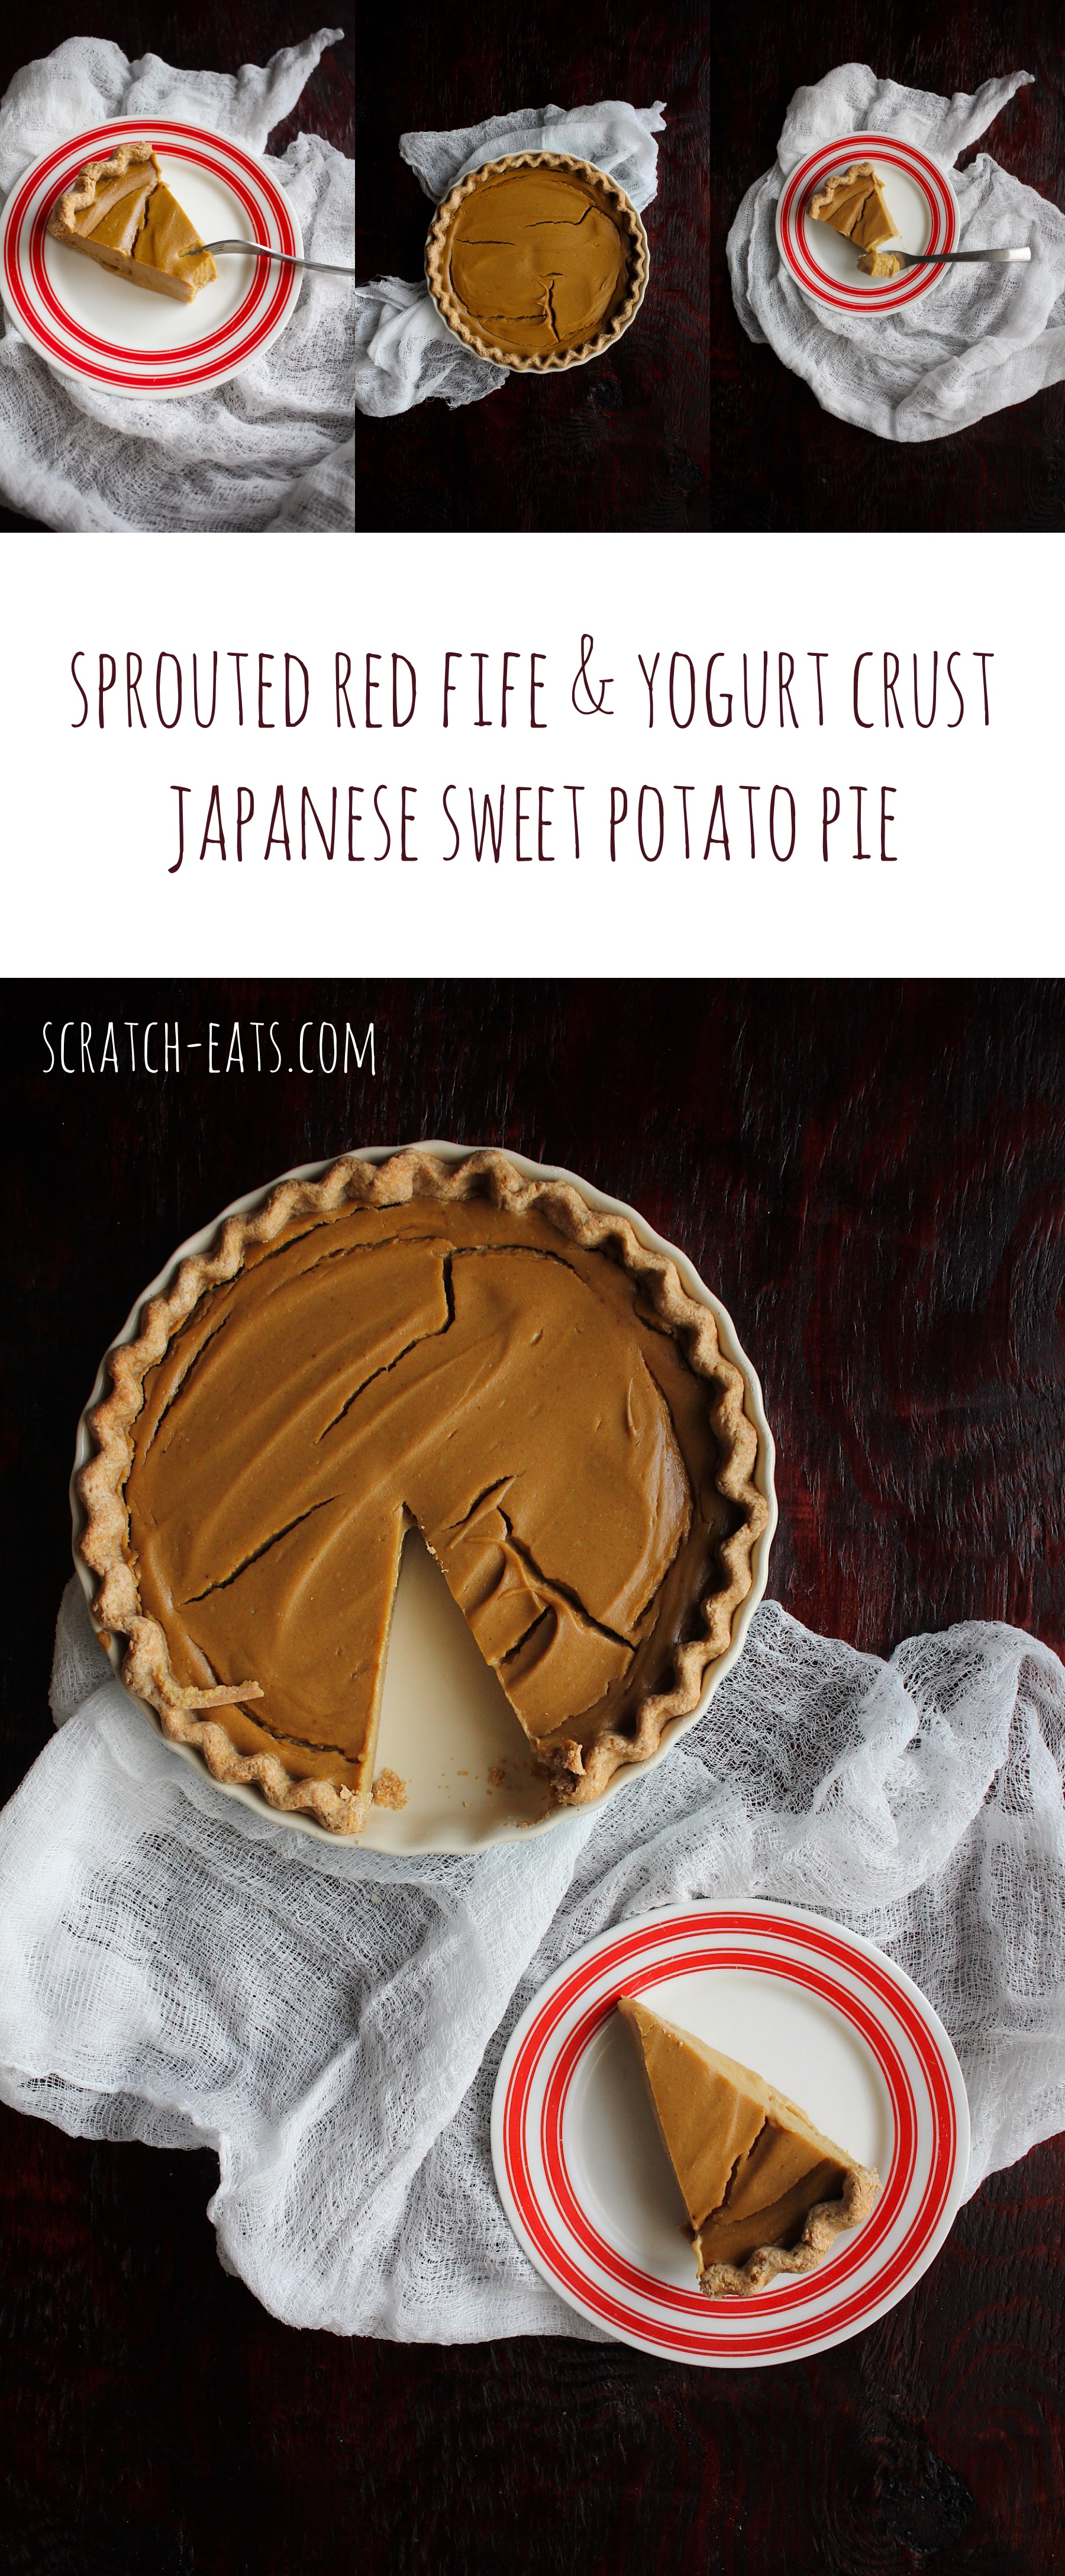 Sprouted Red Fife & Yogurt Crust Japanese Sweet Potato Pie